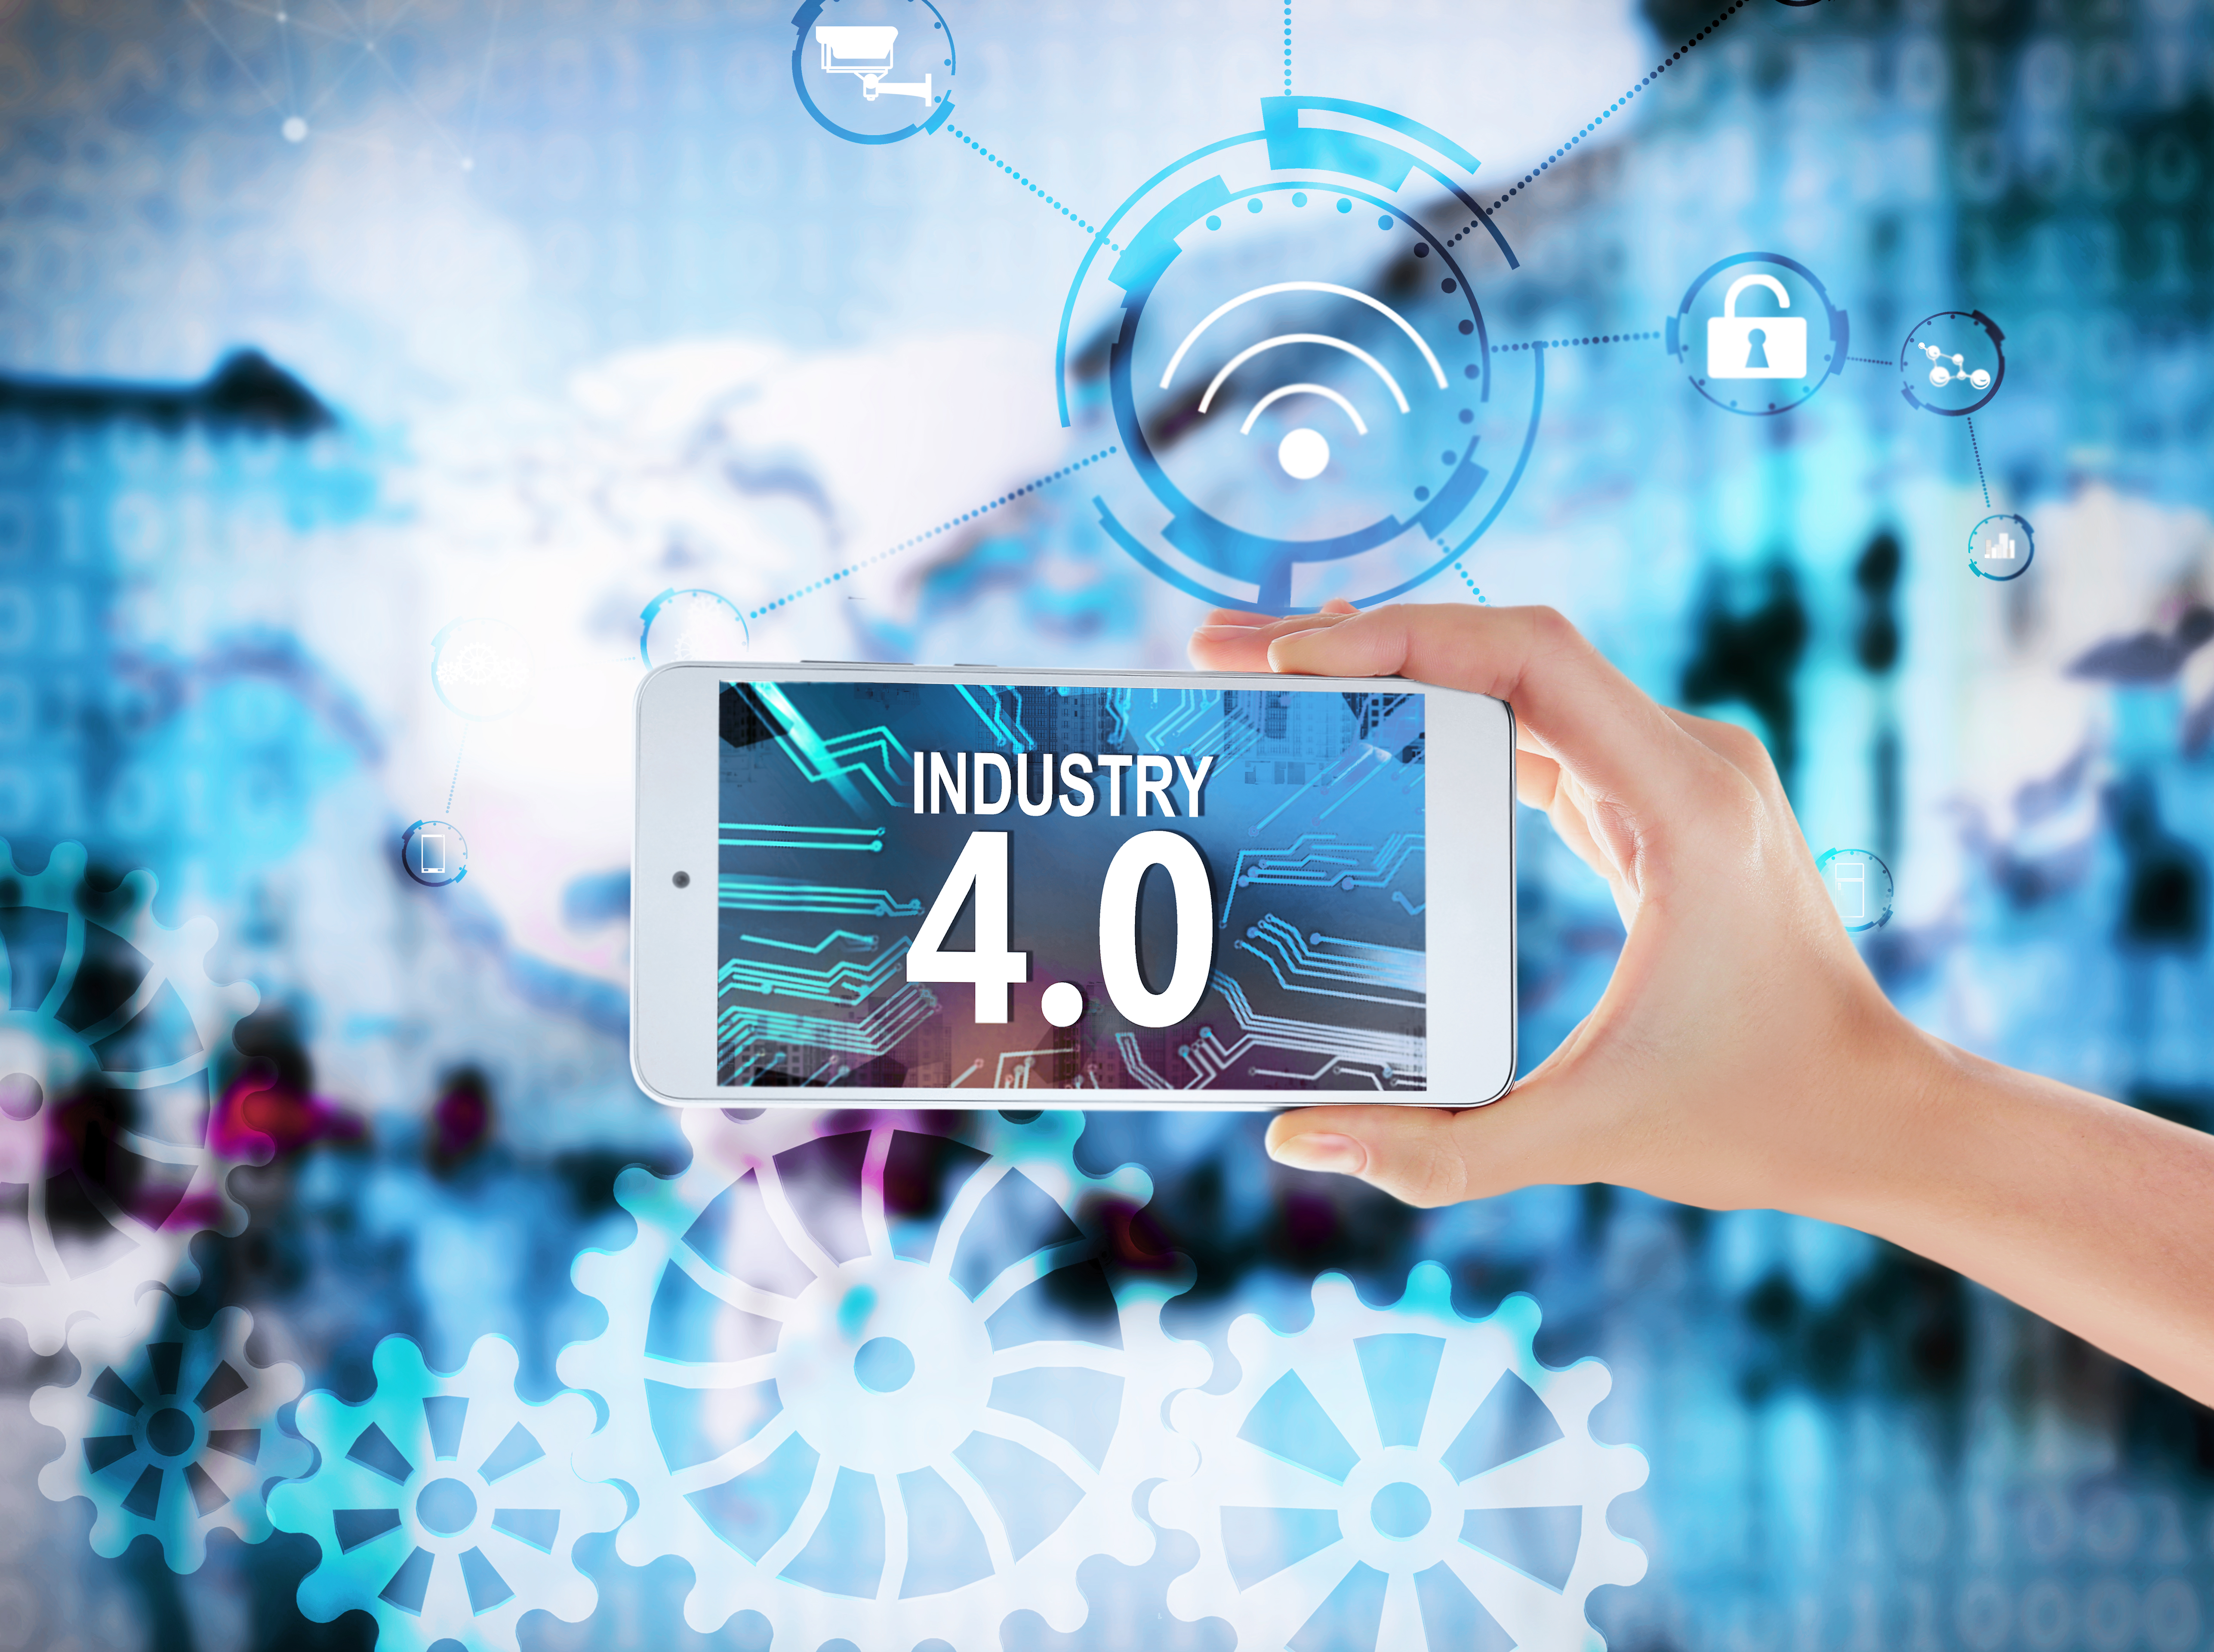 Female hand with smartphone saying Industry 4.0